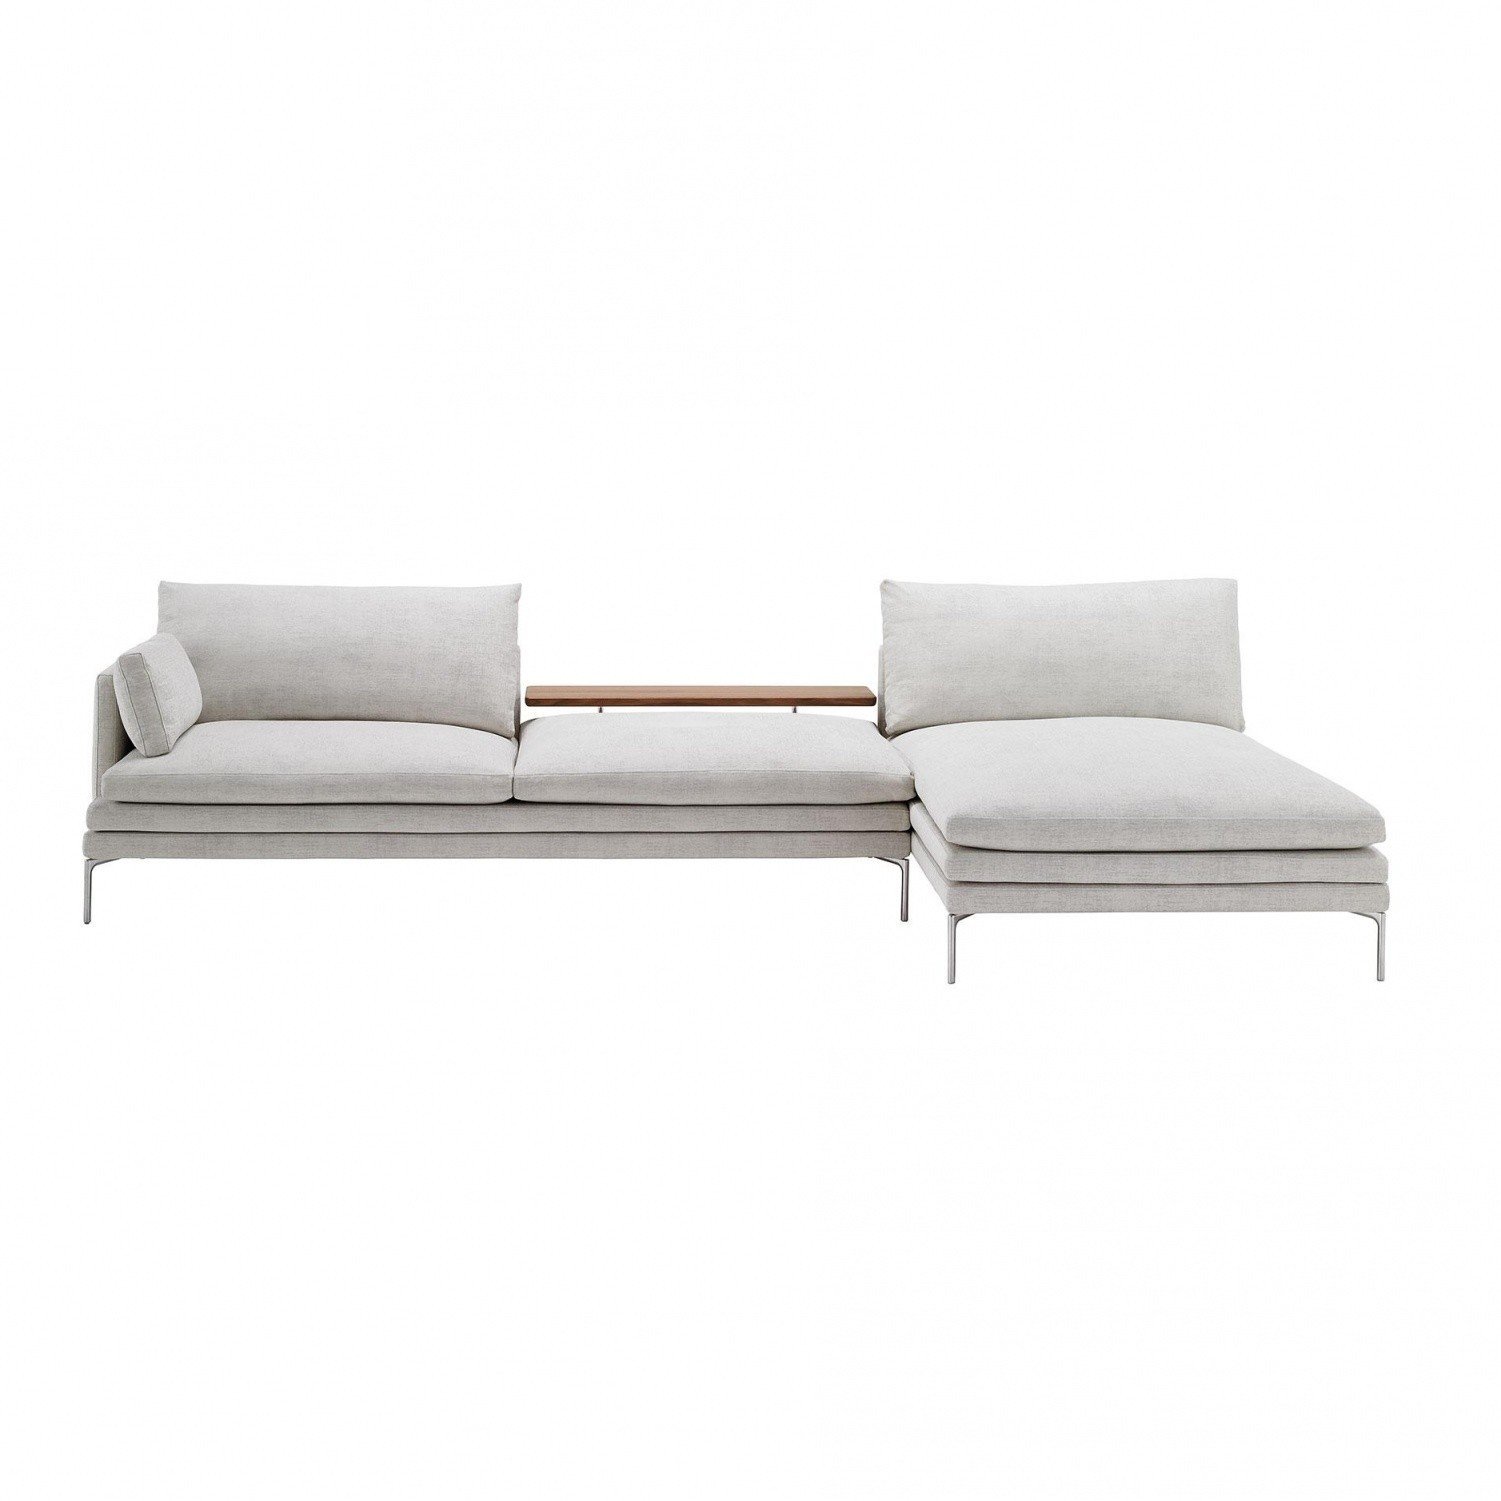 Chause Longue William Sofa Mit Chaiselongue